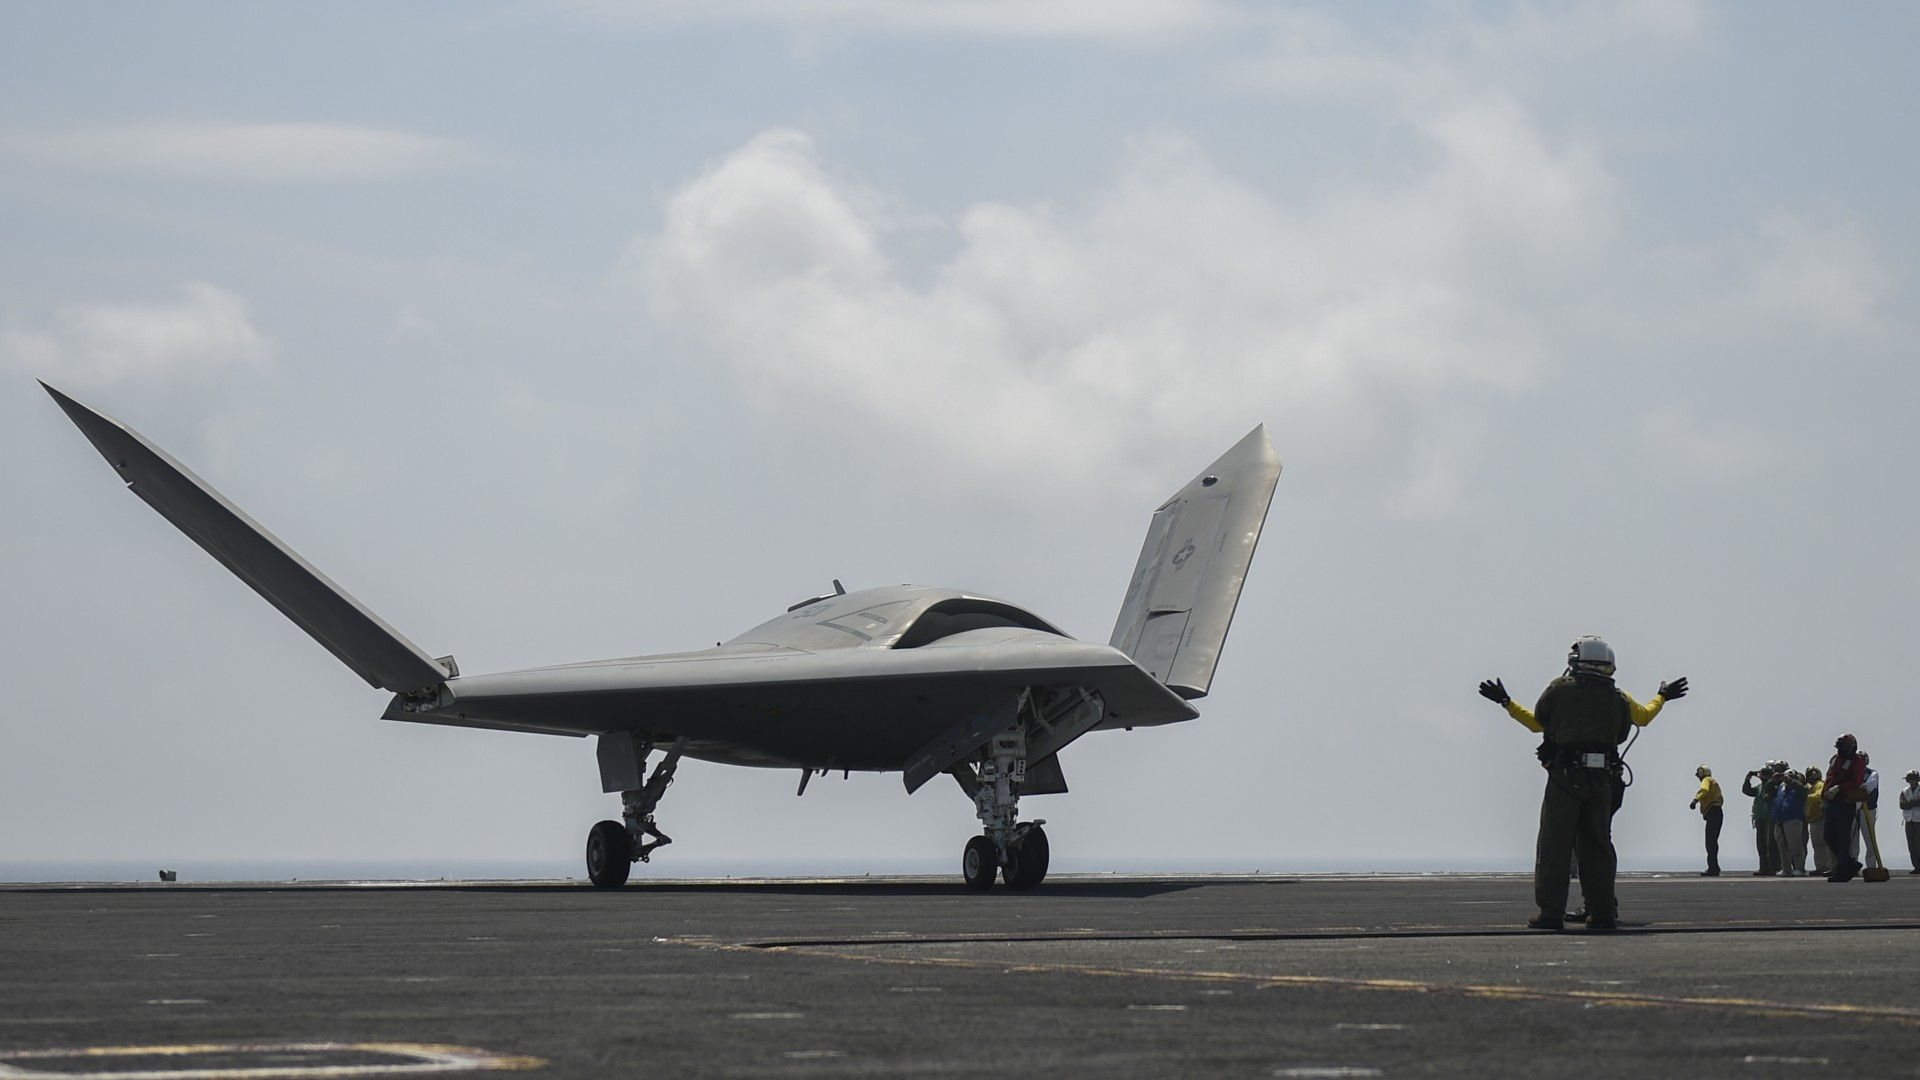 X-47B, drone, UCAS-D, Pegasus, USA Army, U.S. Air Force (horizontal)